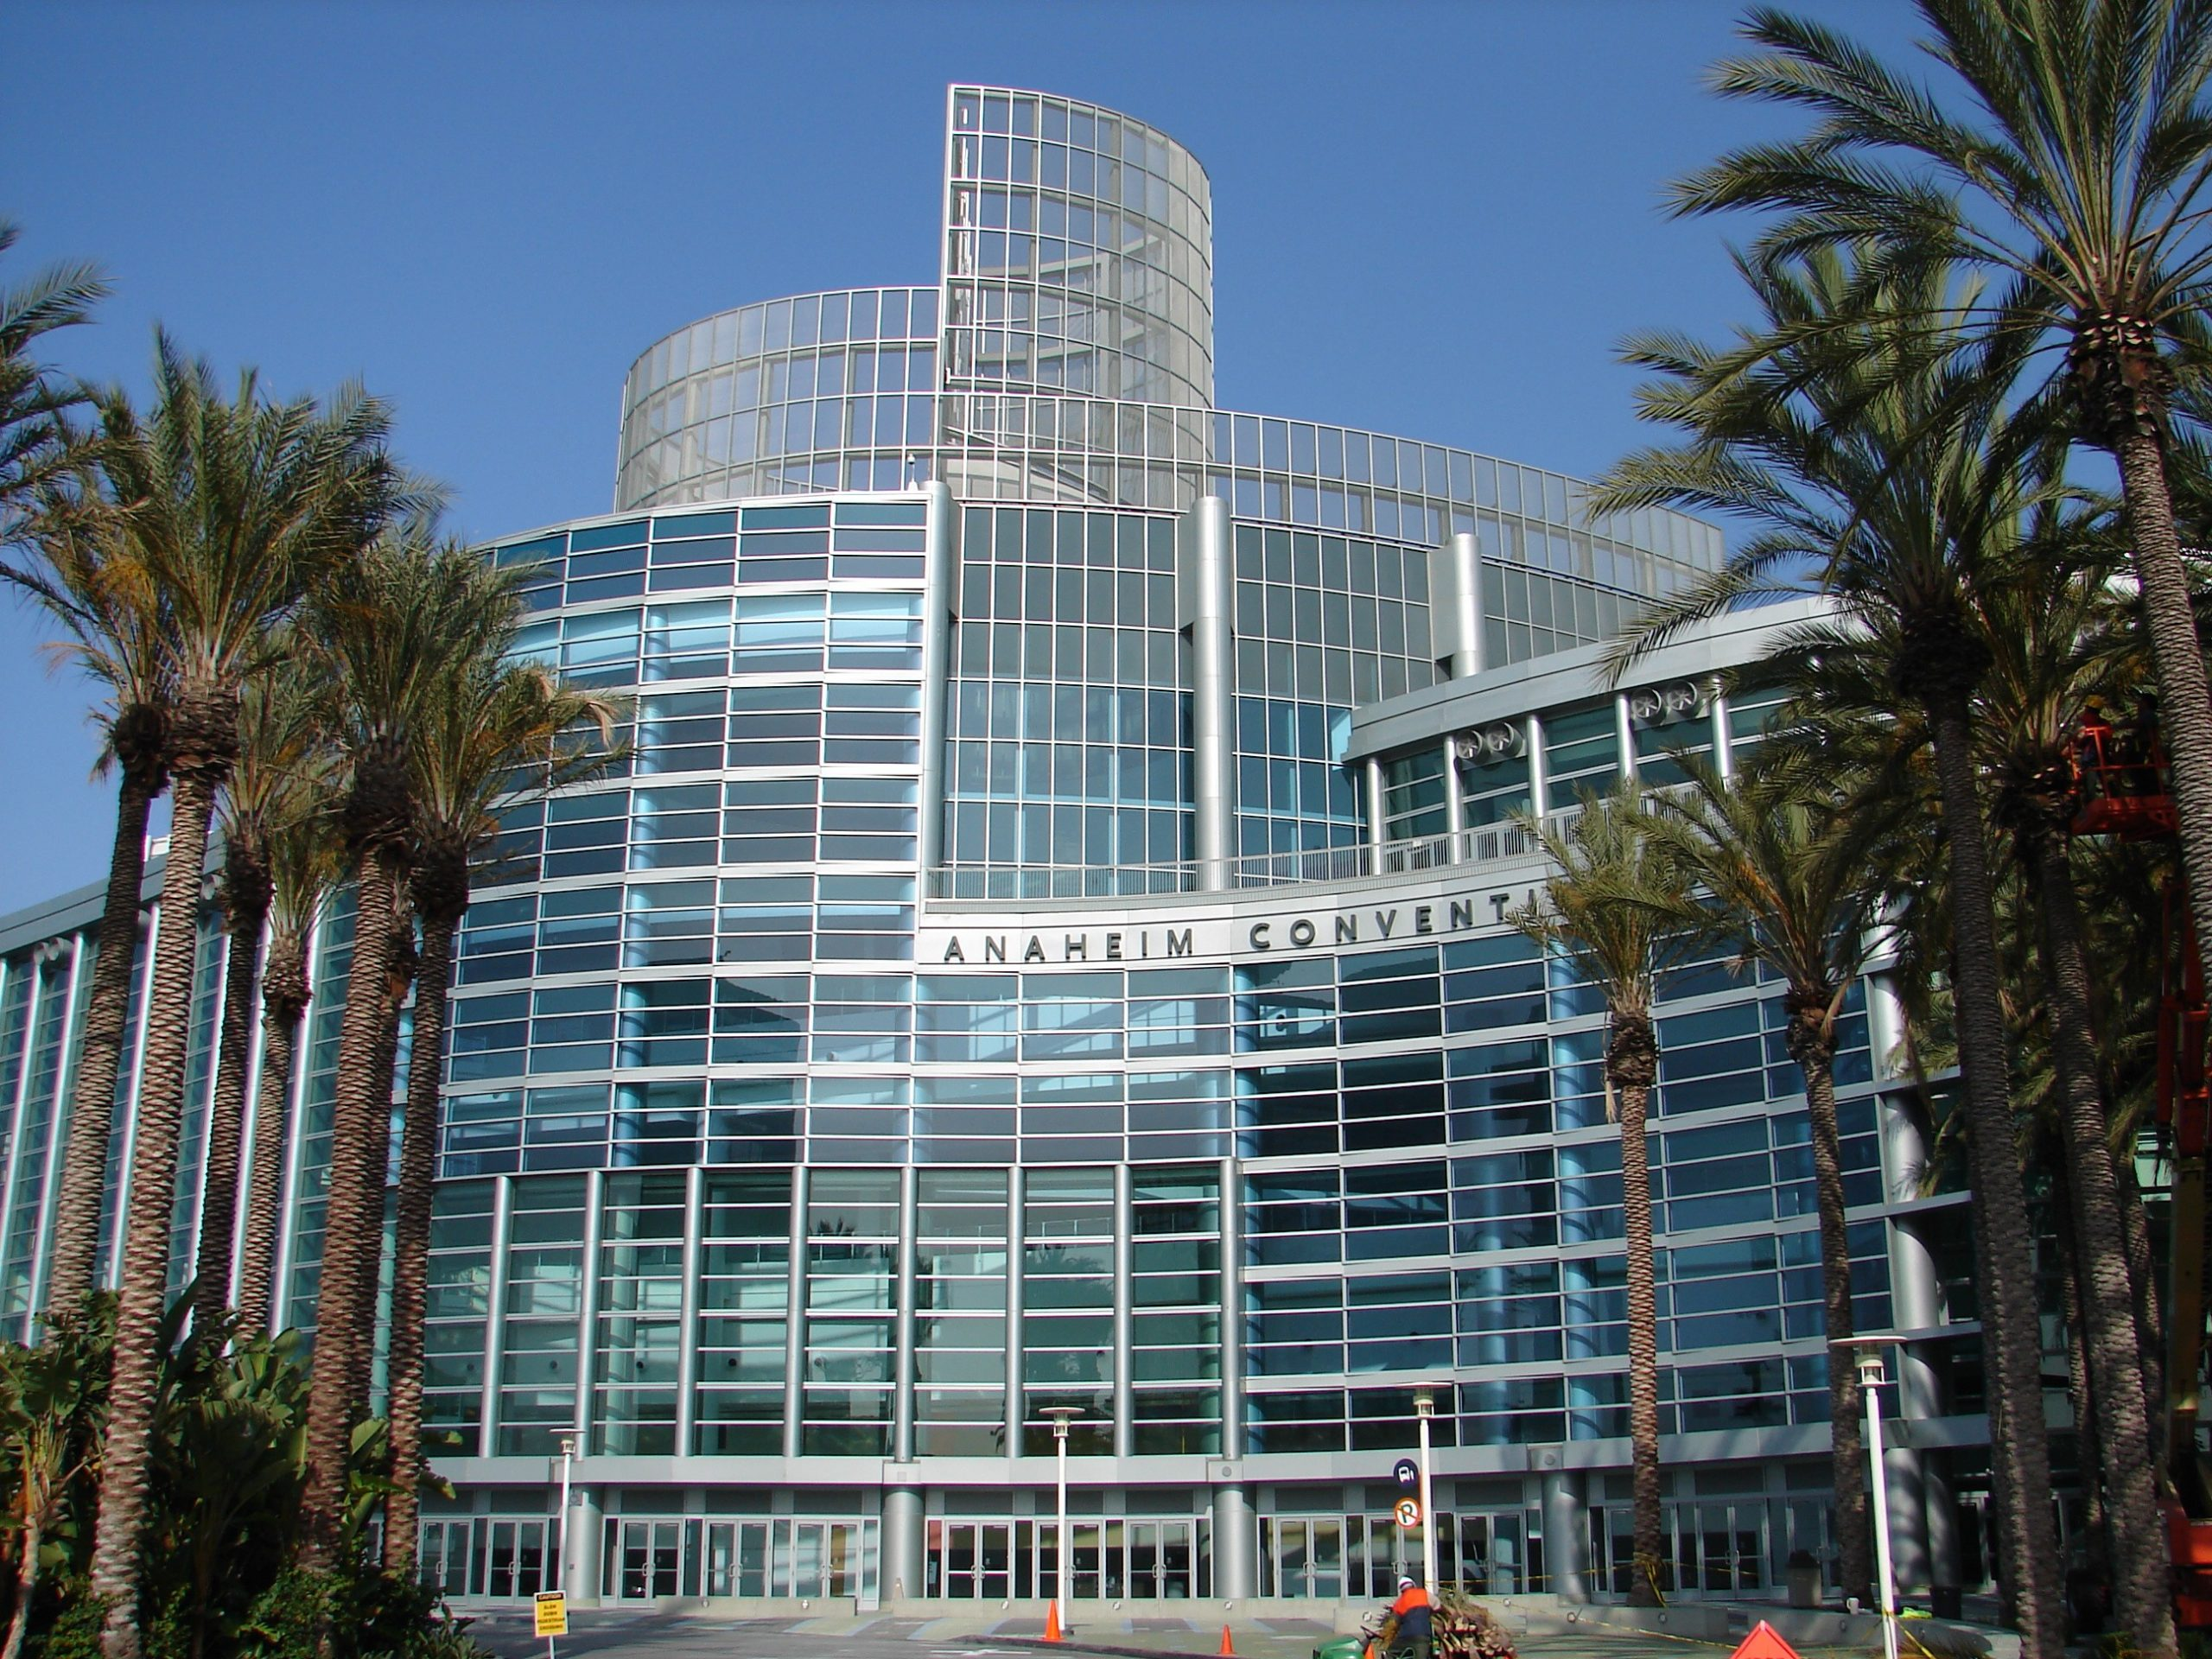 Smart City Networks named Anaheim Convention Center's exclusive telecommunications provider